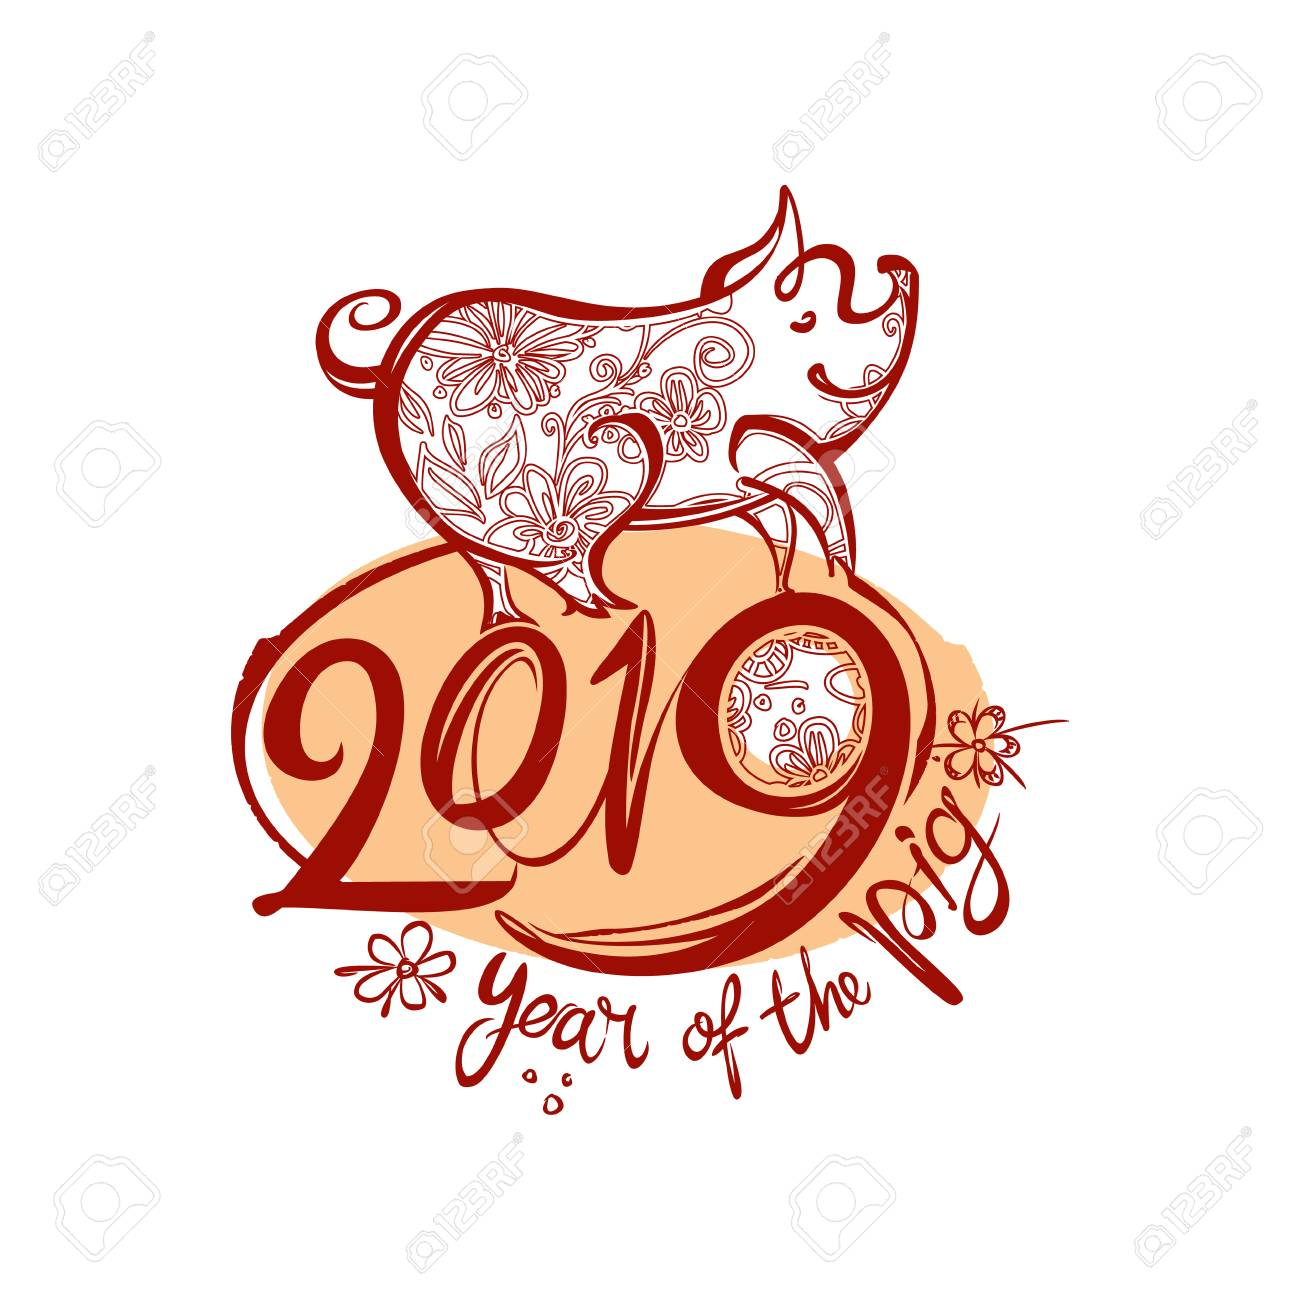 Happy New Year 2019  Year of the Earth Pig on the Chinese Calendar